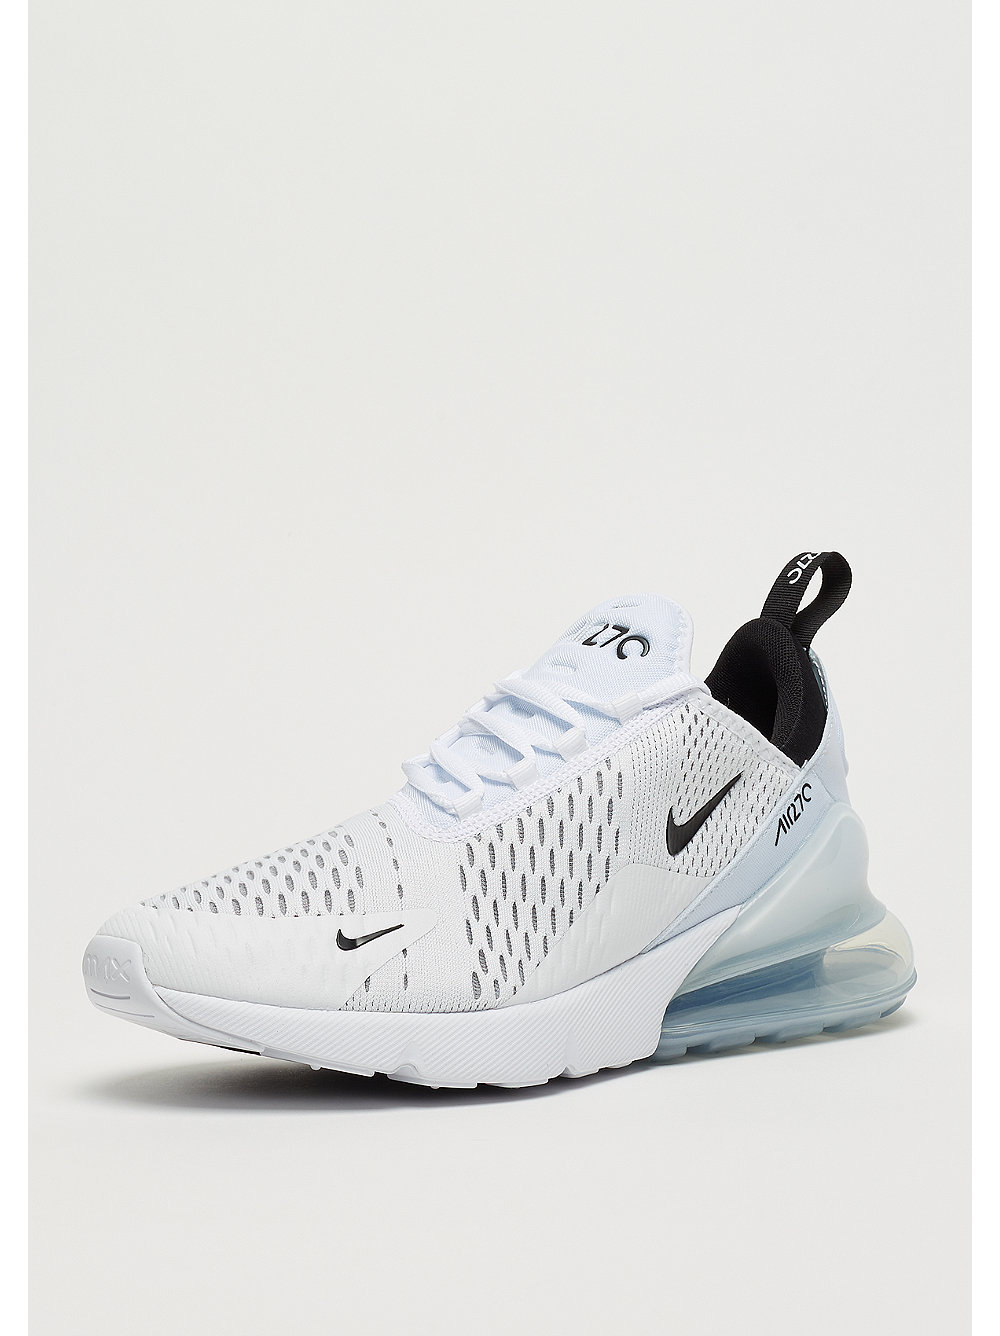 finest selection 11594 e2540 Air Max 270 white/black//white